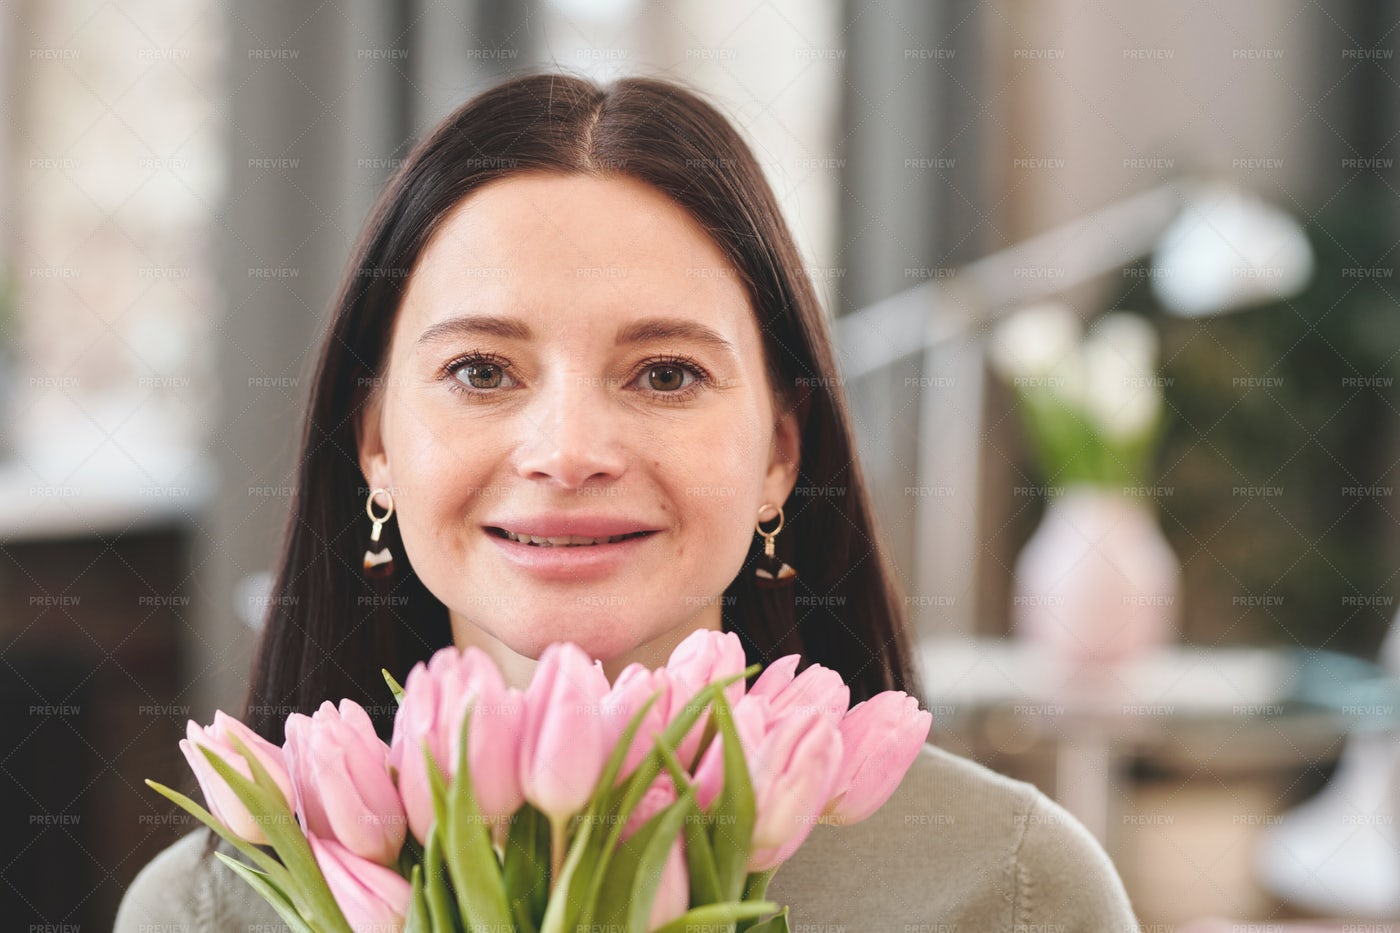 Woman With Bunch Of Tulips: Stock Photos